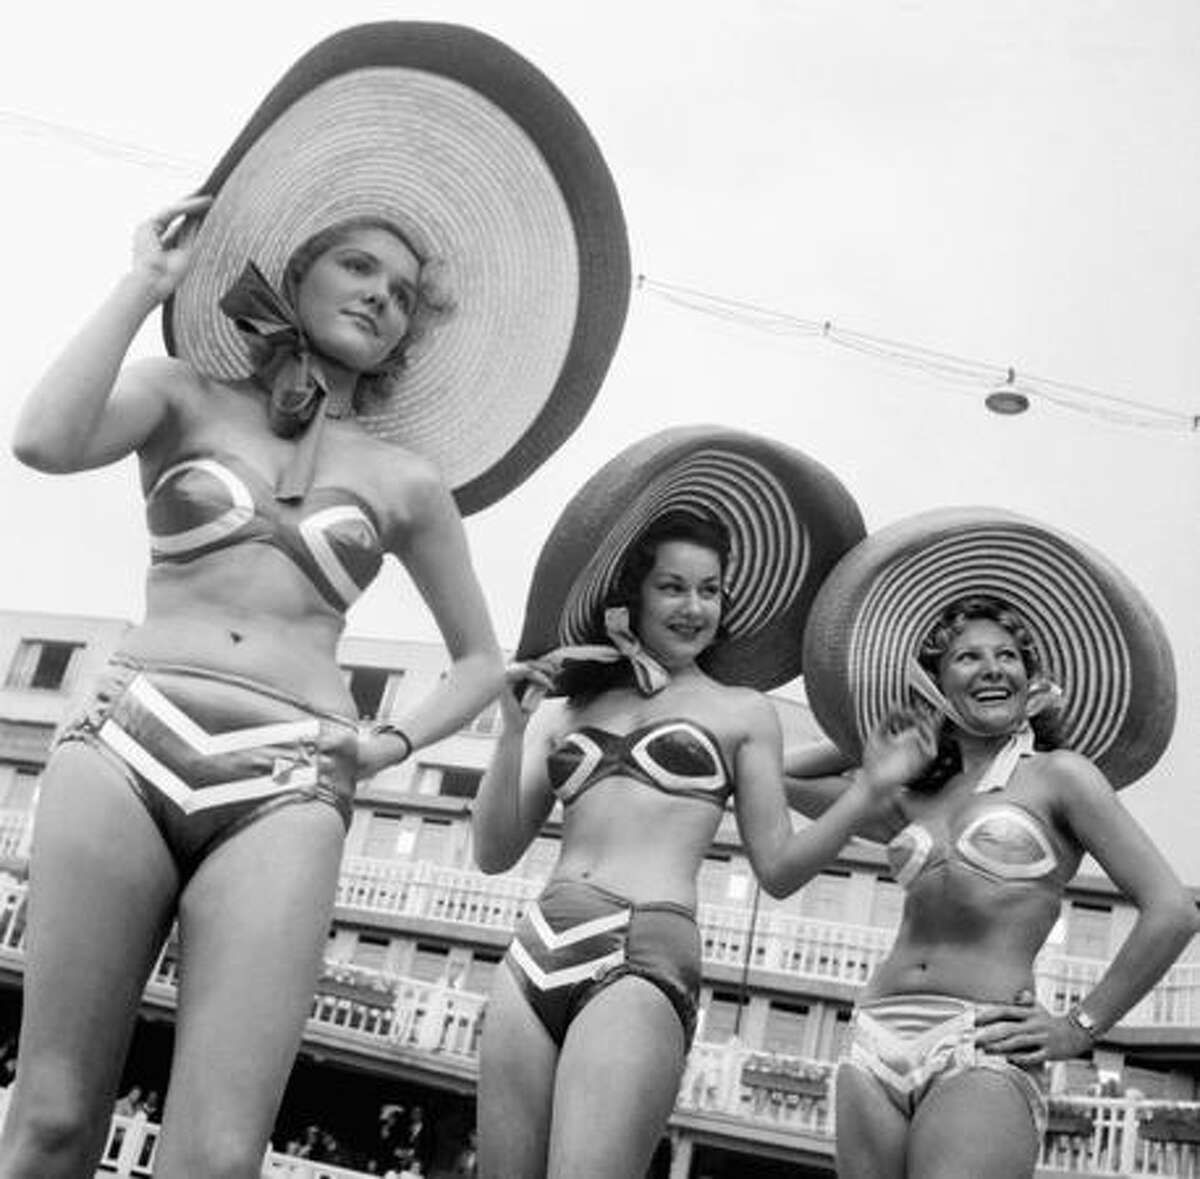 Five years after Reard's bikini was introduced, these women wore the latest designs at the same place where it all started, Paris' Molitor open-air swimming pool.